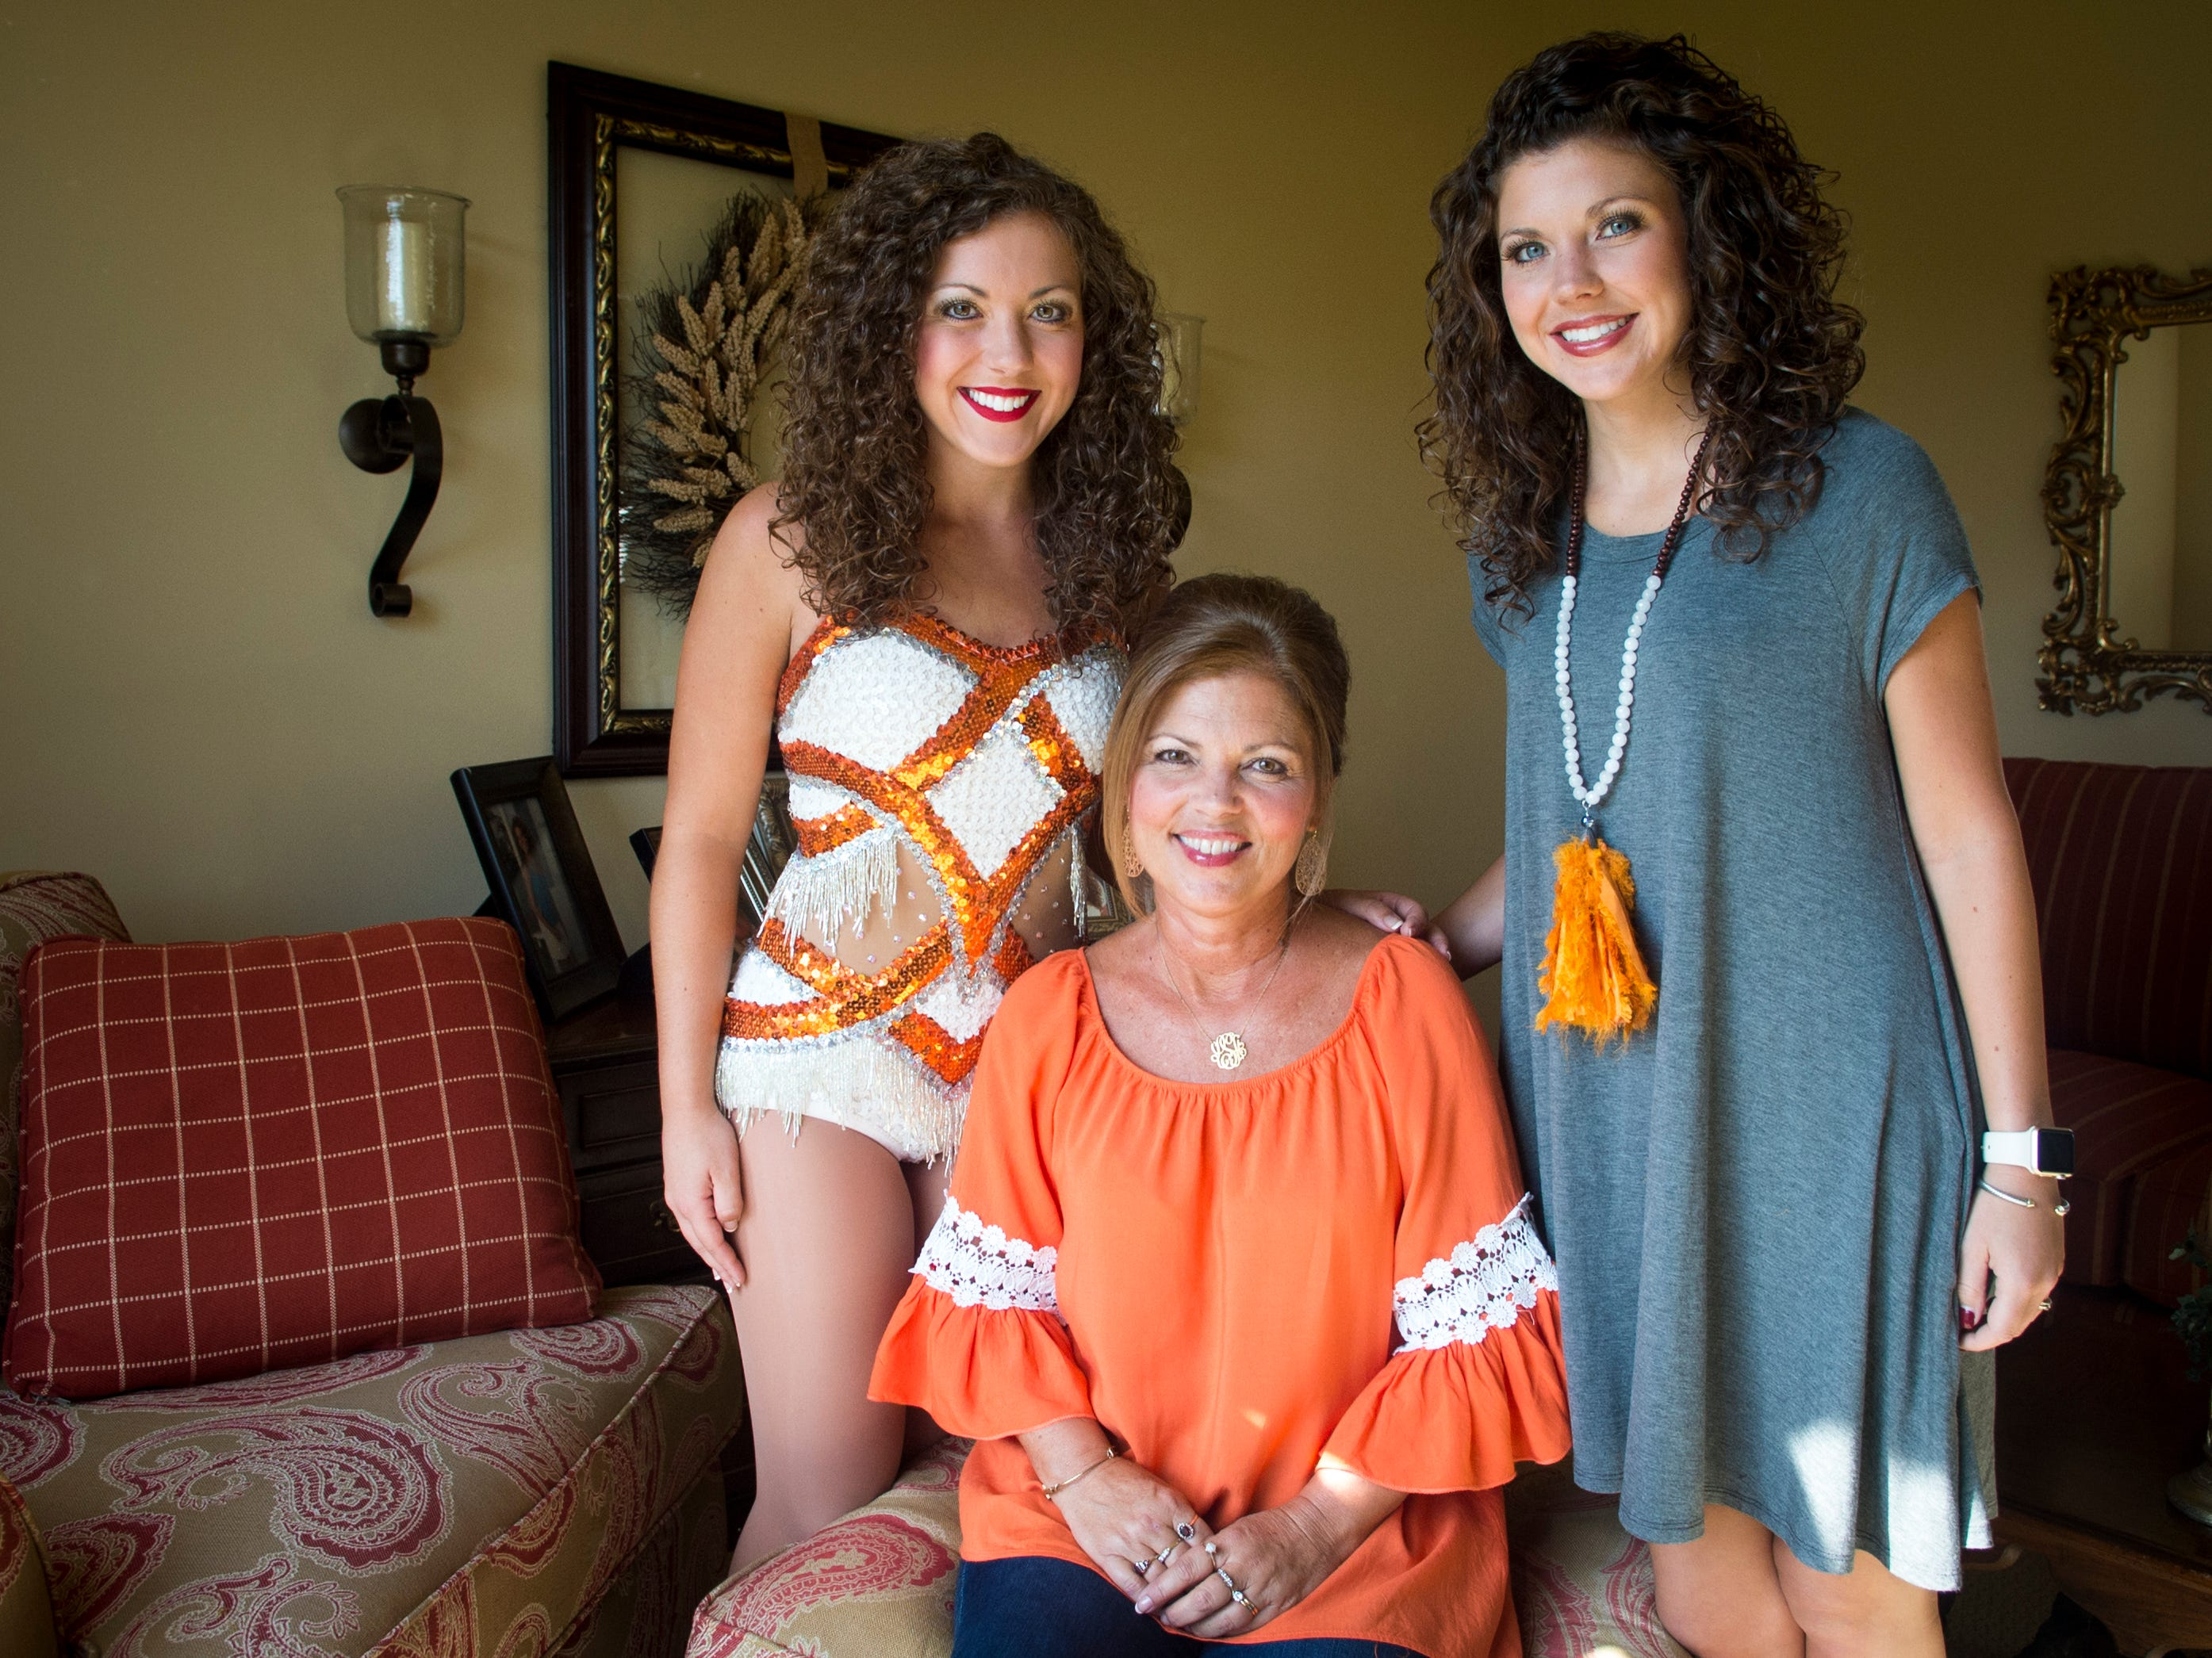 UT Majorette Kari Summers, left, is pictured with her mother Leigh Ann Summers, center, and sister Kristi Summers, right, at their home in Knoxville on Monday, Oct. 31, 2016.  All three women were UT Majorettes and will march together during UT's homecoming game.